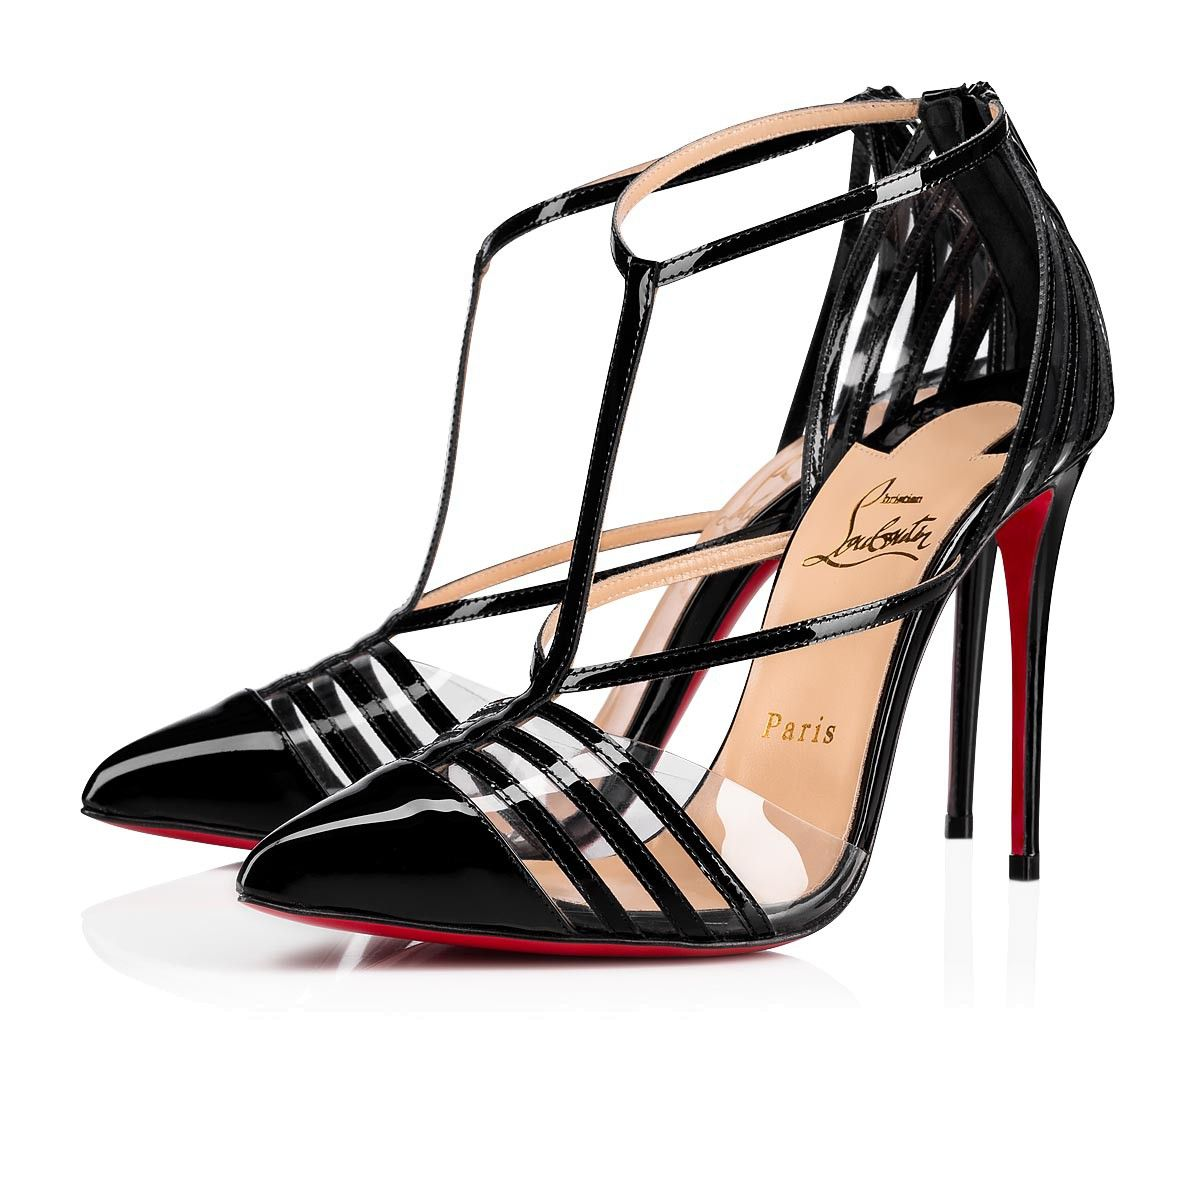 cd82df4728a Deck 100 Black Patent Leather - Women Shoes - Christian Louboutin in ...